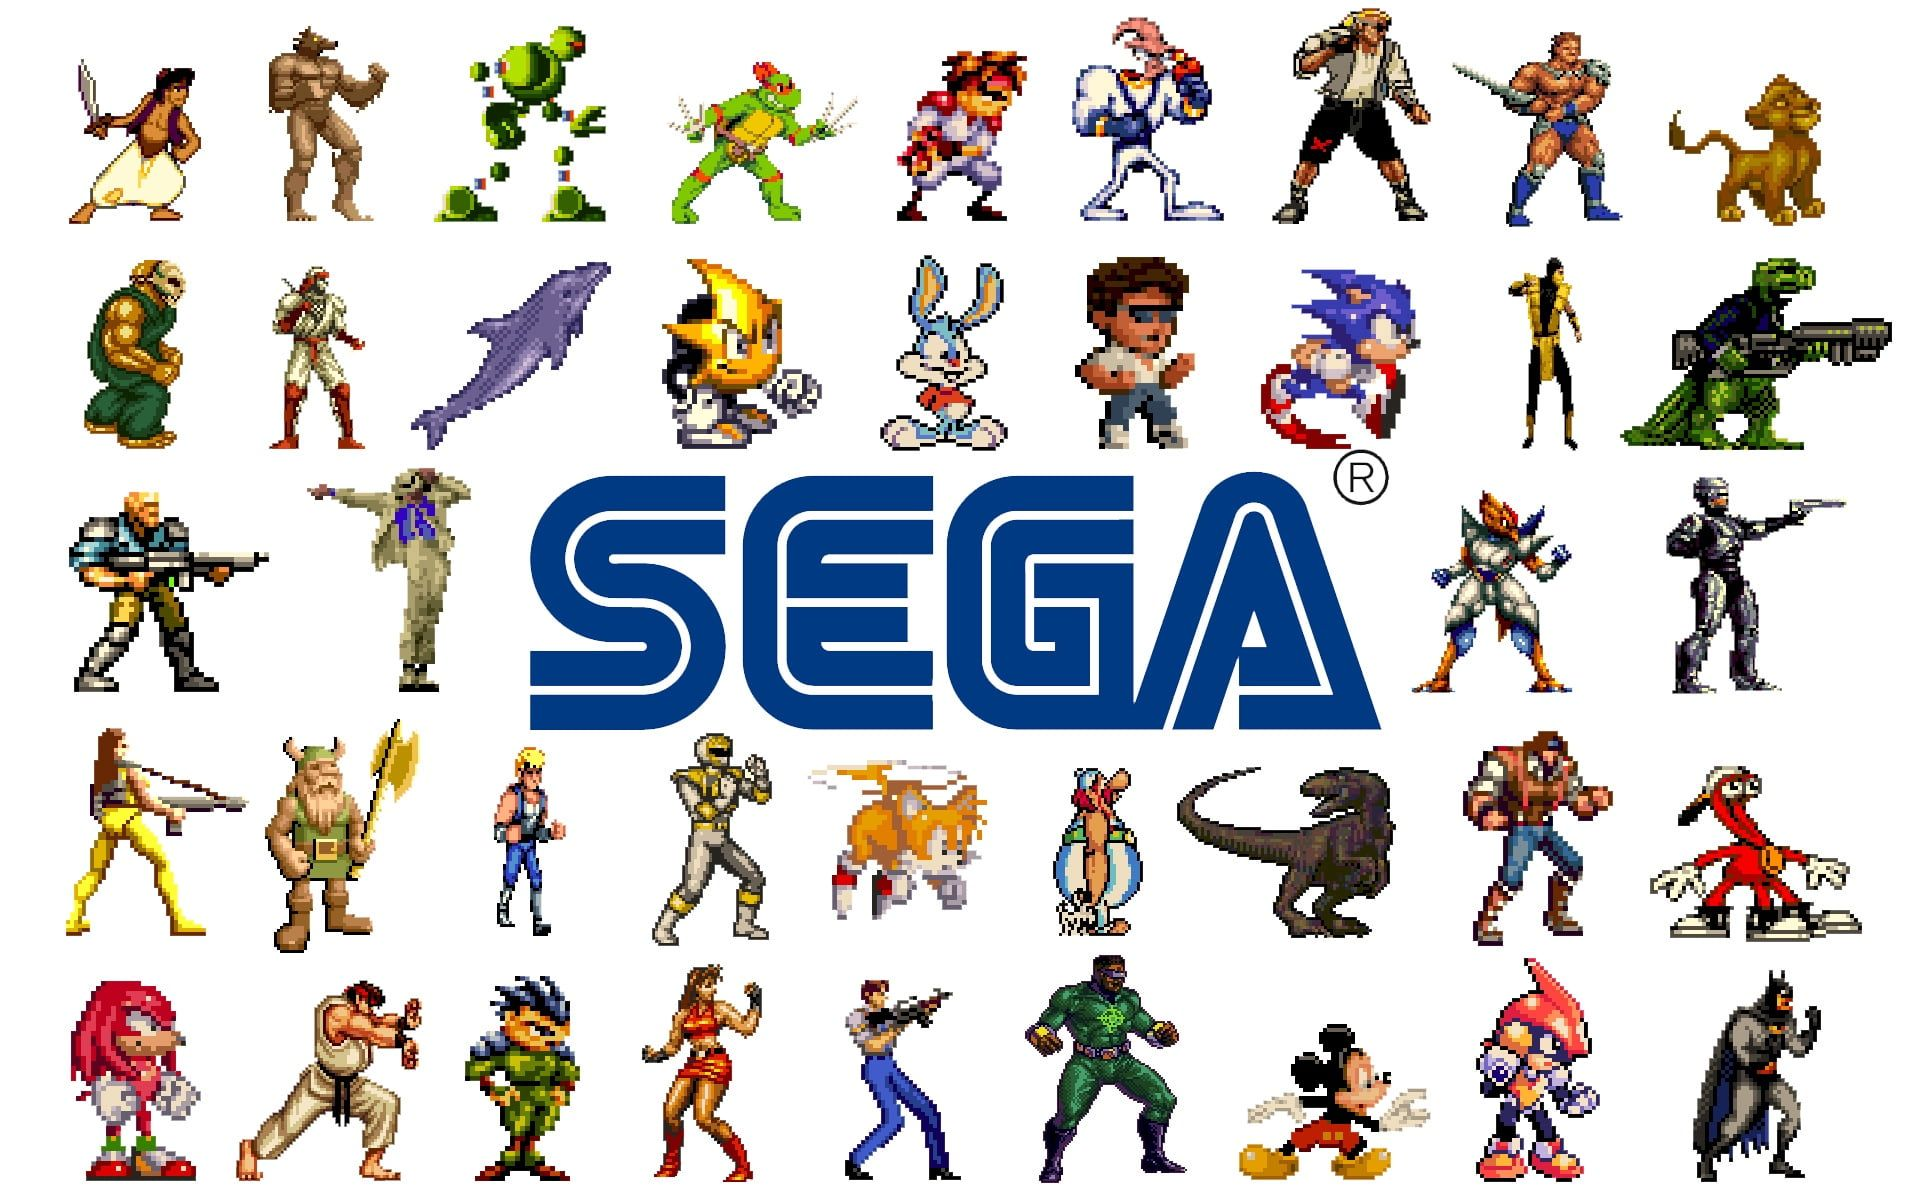 Sega Characters Wallpaper Sega Sonic Tiny Toon Shinobi Aladin Tales Golden Axe 16 Bit 1080p Wallpaper Hdwall Retro Video Games Character Wallpaper Sega